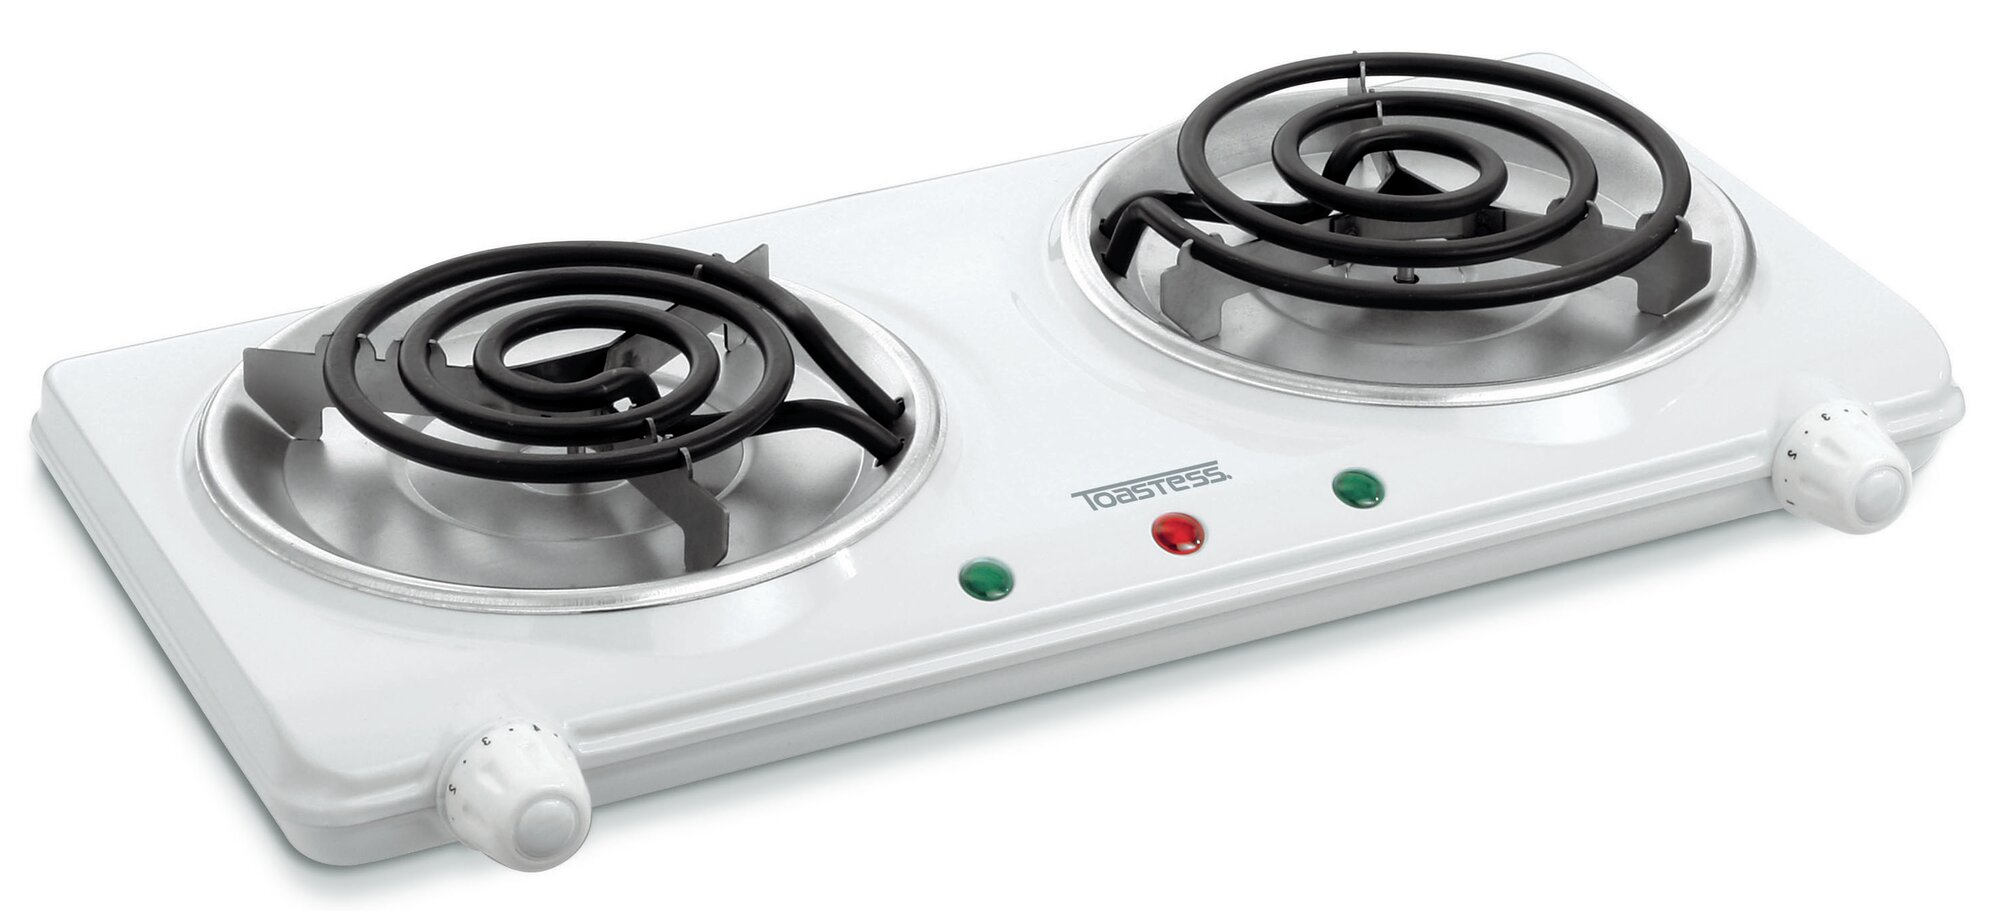 Salton Portable 17 Quot Electric Cooktop With 2 Burners